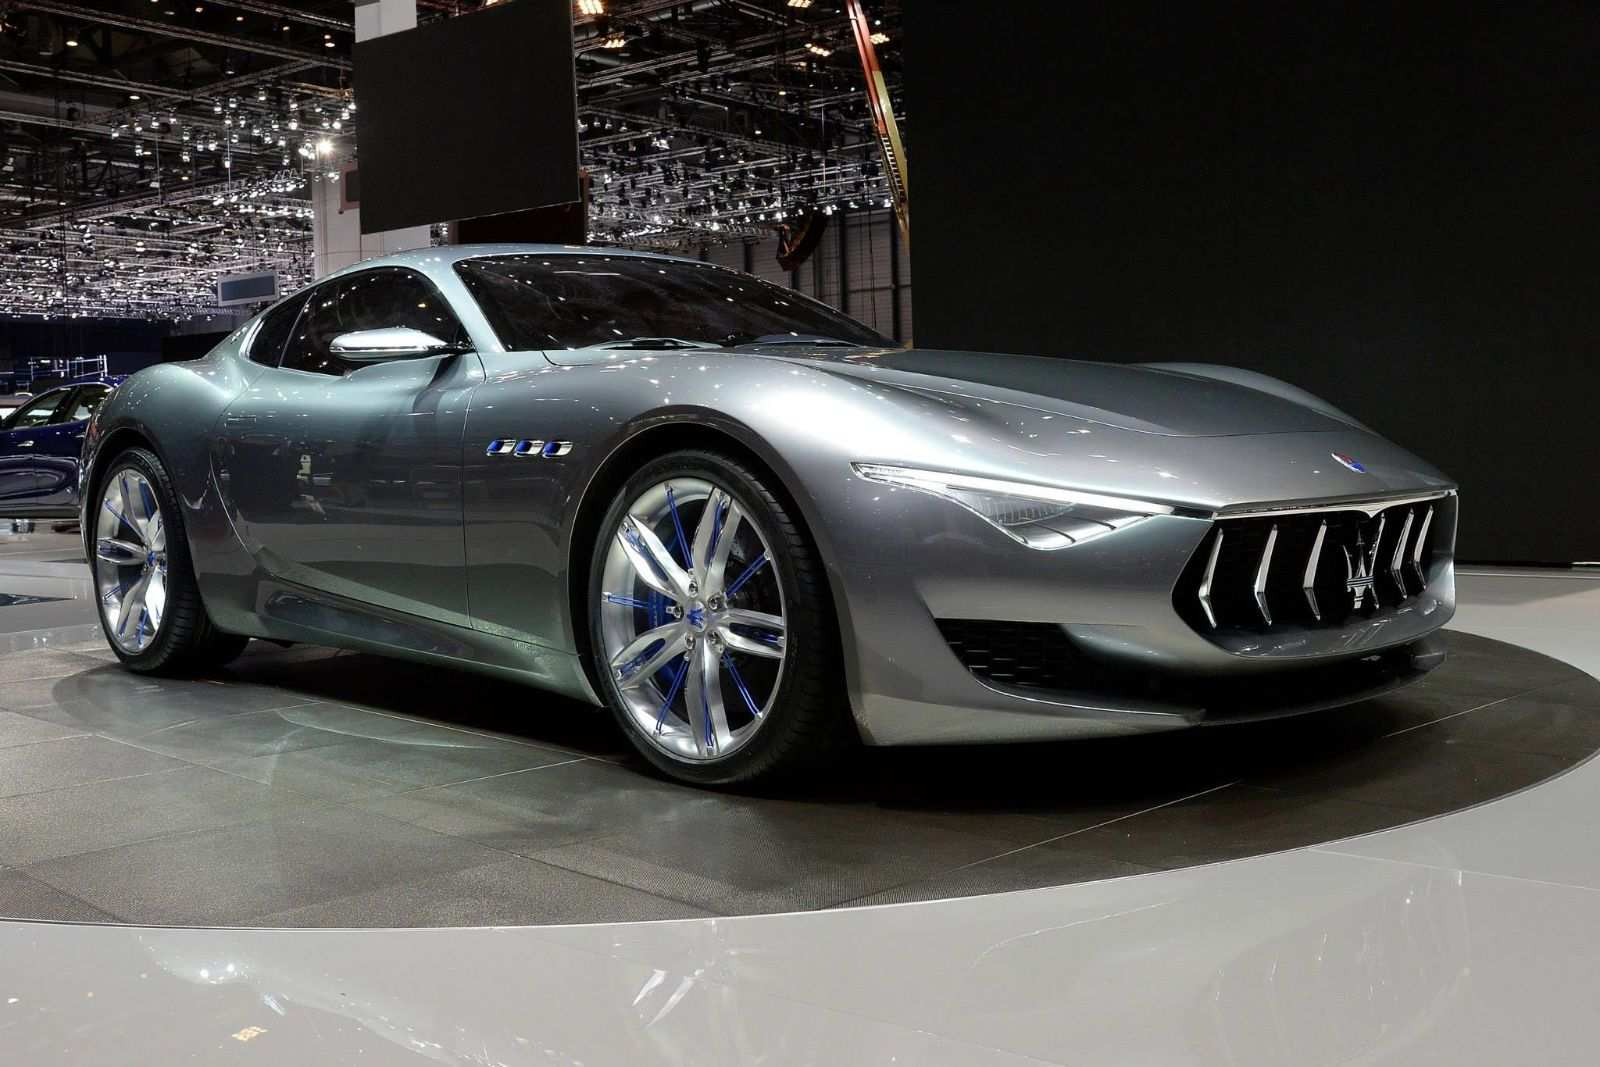 52 Best Review 2020 Maserati Alfieri Pictures by 2020 Maserati Alfieri